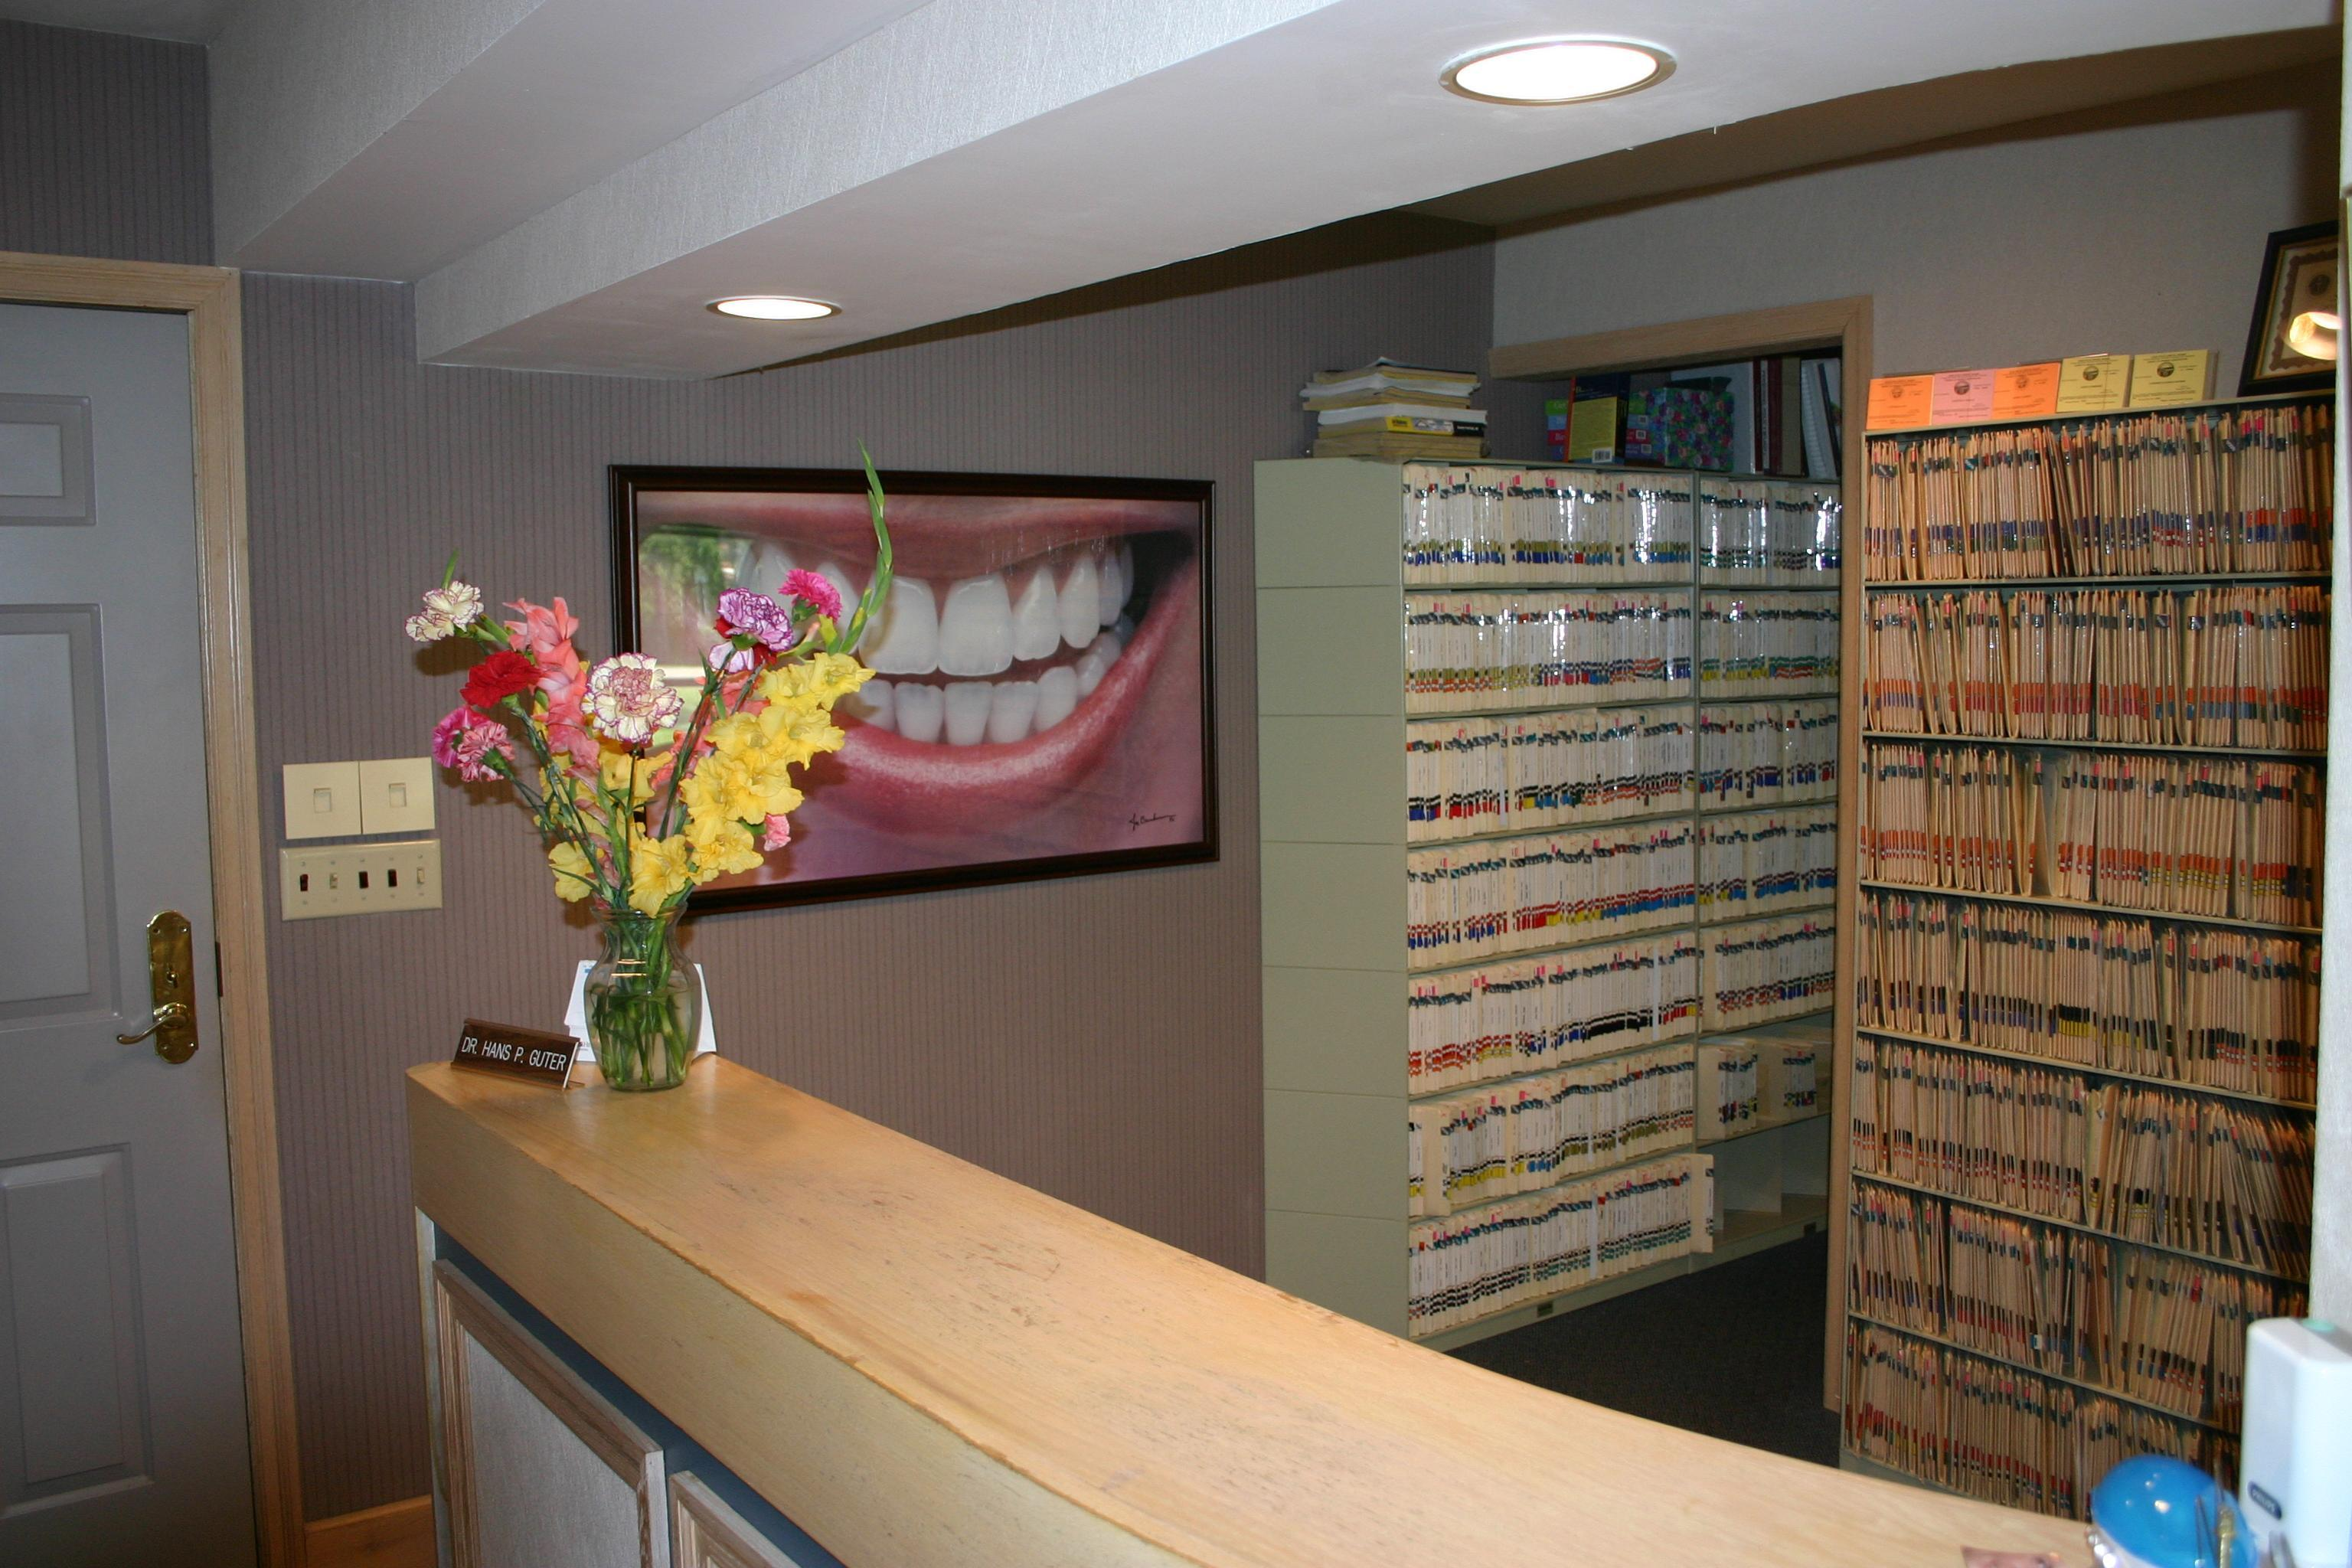 The Guter Center for Family & Cosmetic Dentistry